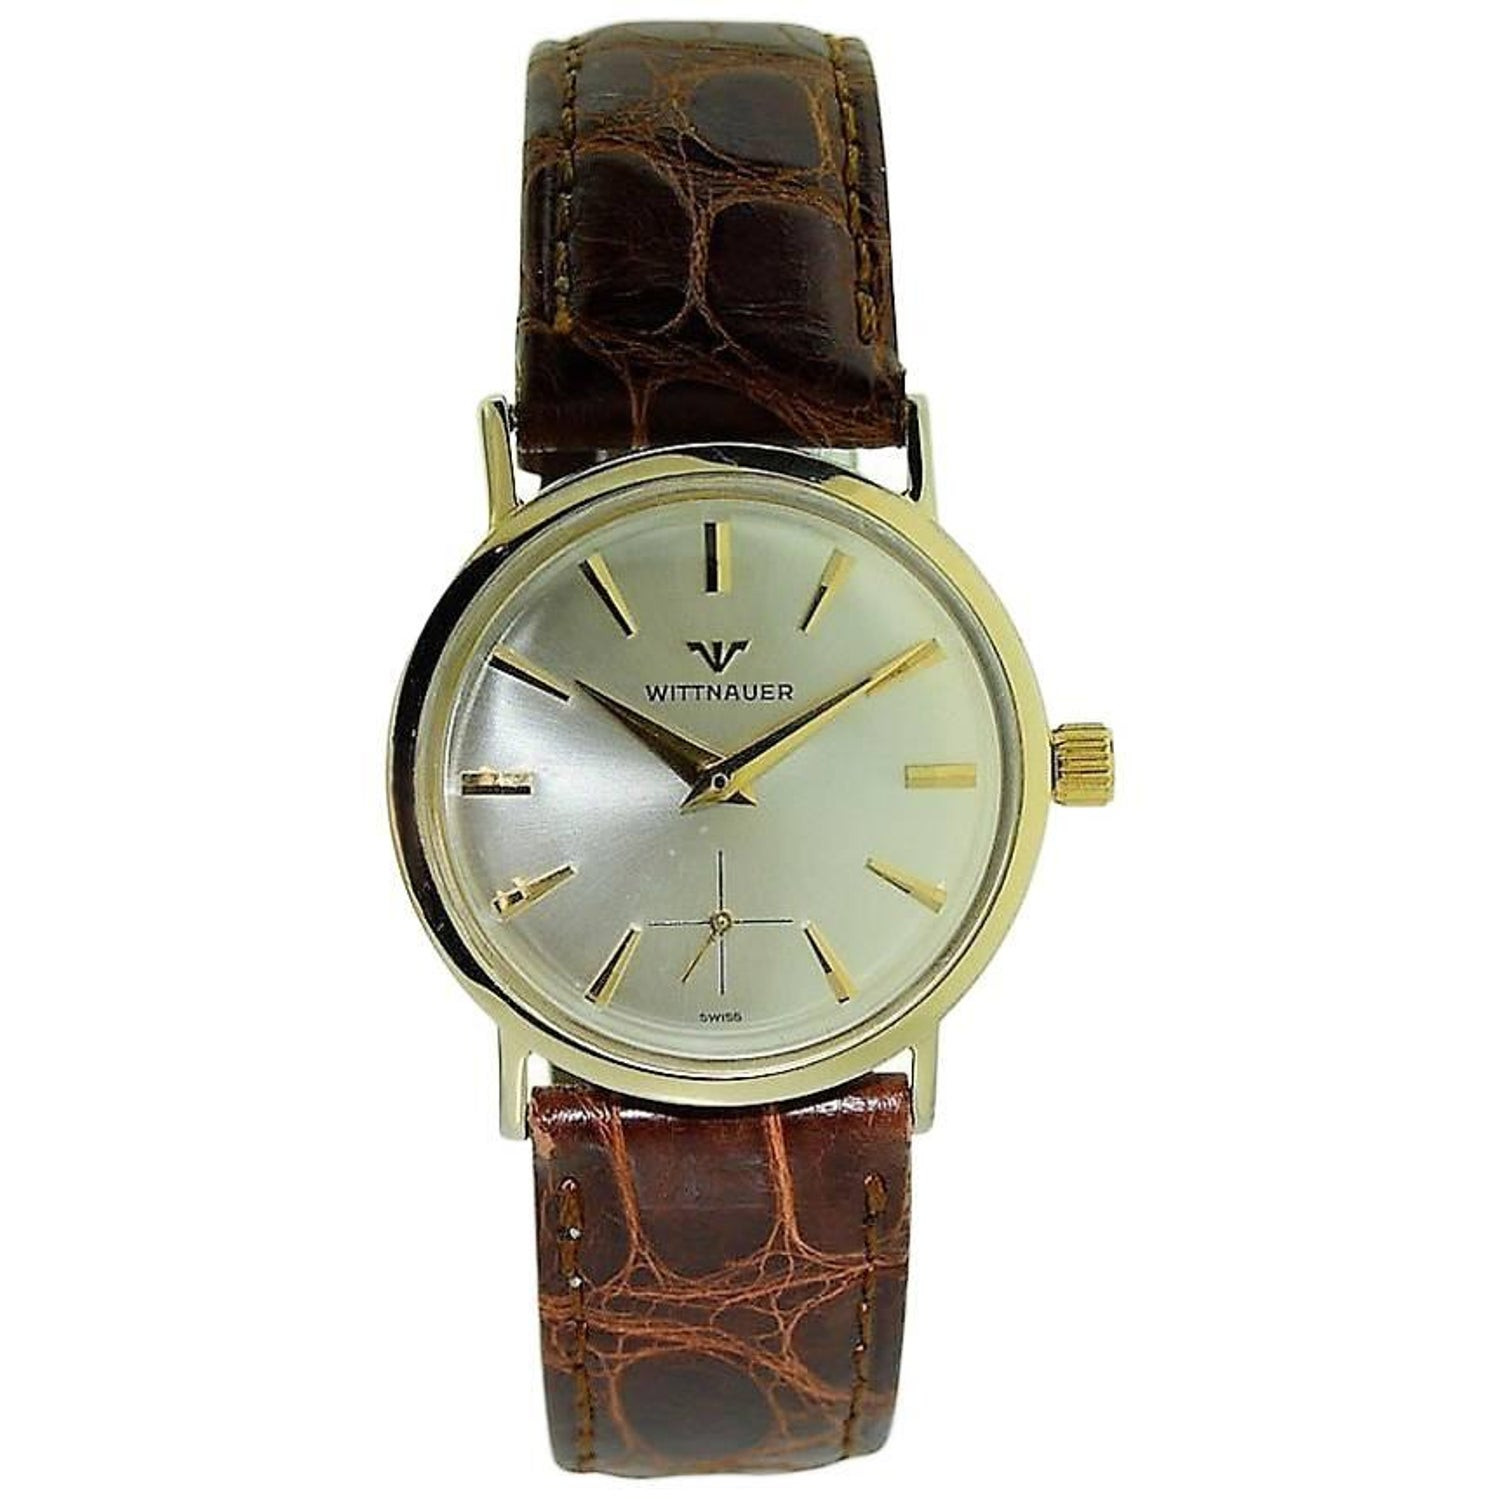 Wittnauer watches 16 for sale at 1stdibs wittnauer solid gold vintage manual wind wristwatch circa 1920s sciox Choice Image